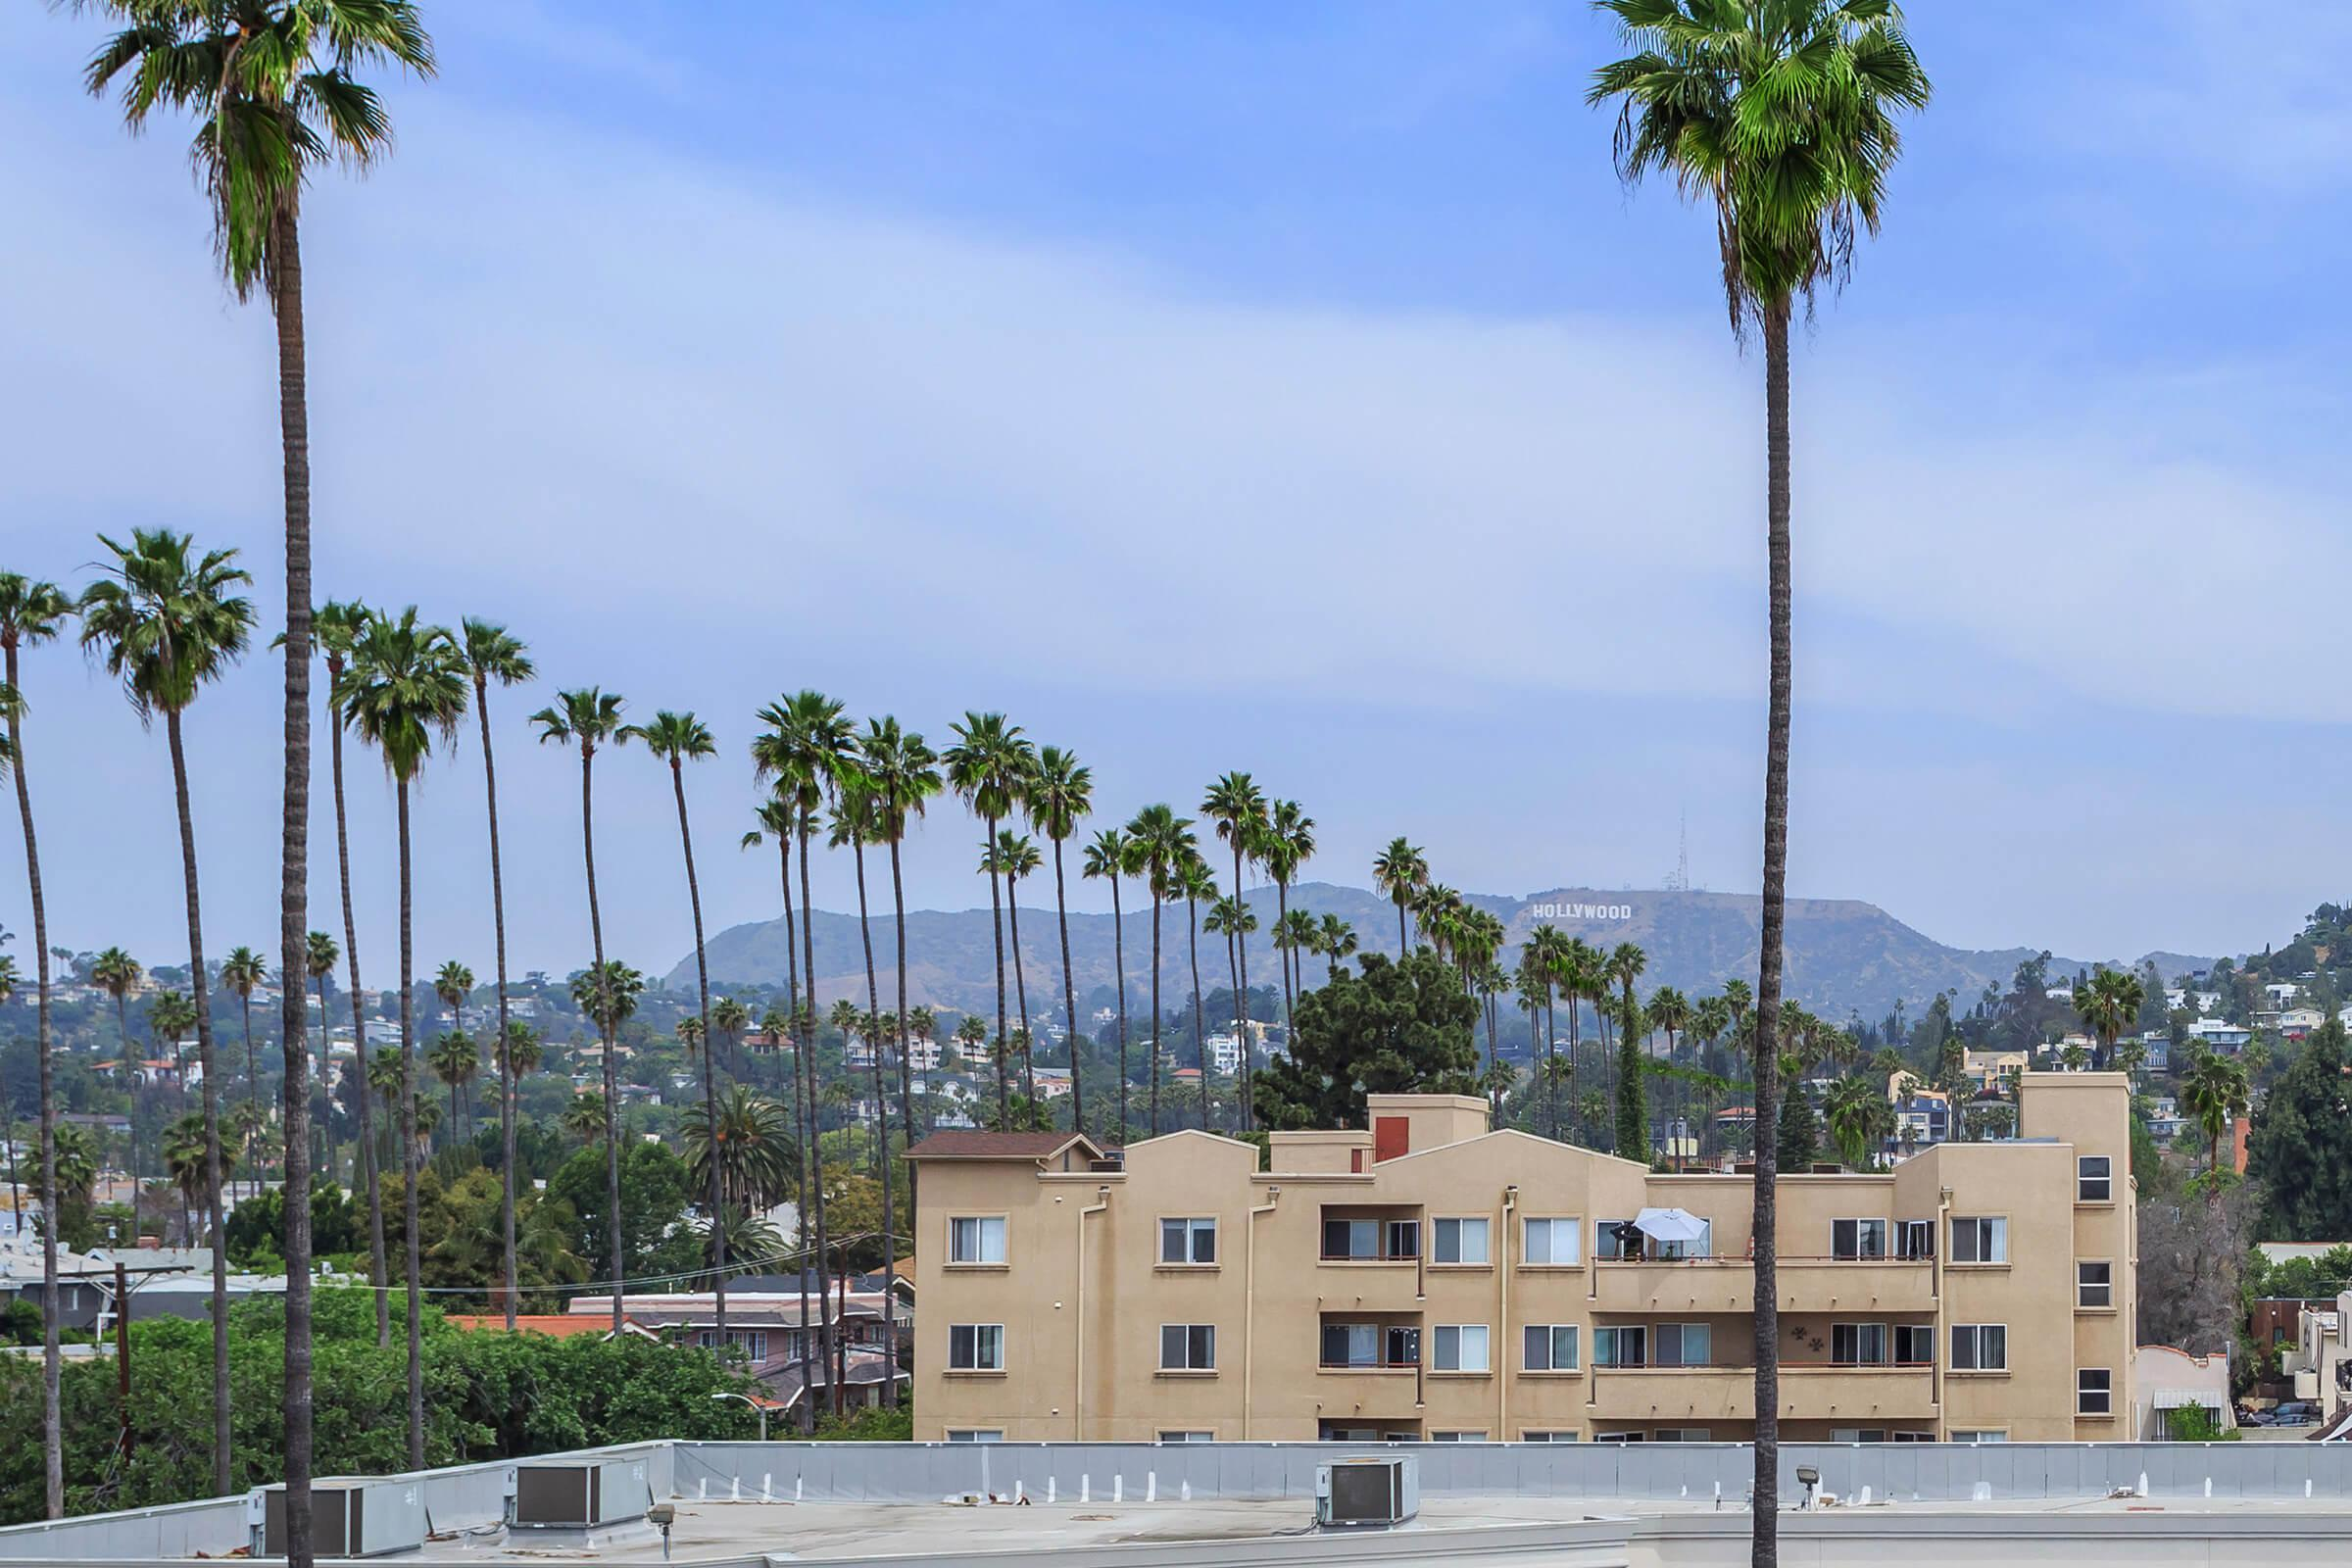 a group of palm trees and buildings in the background